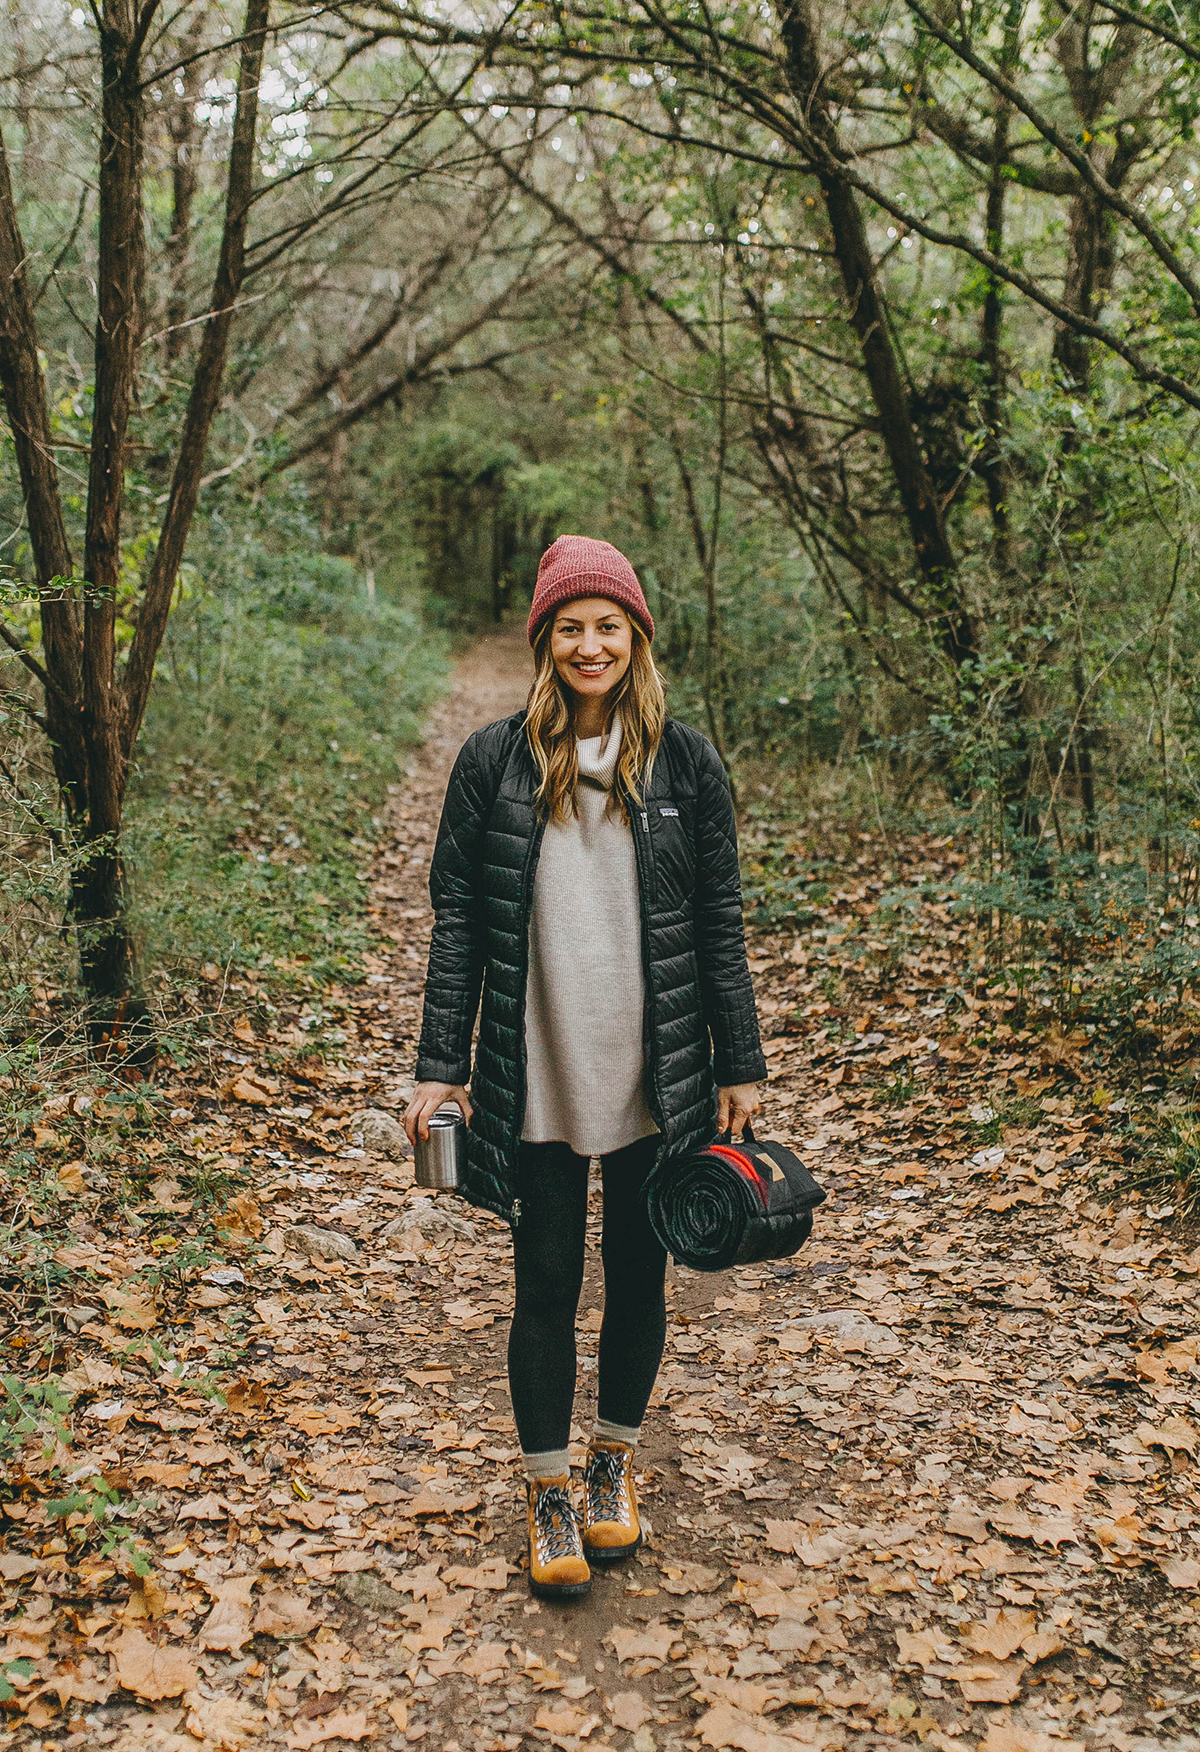 livvyland-blog-olivia-watson-austin-texas-fashion-lifestyle-blogger-greenbelt-fall-patagonia-radalie-parka-sorel-ainsley-boots-hiking-outfit-backcountry-2